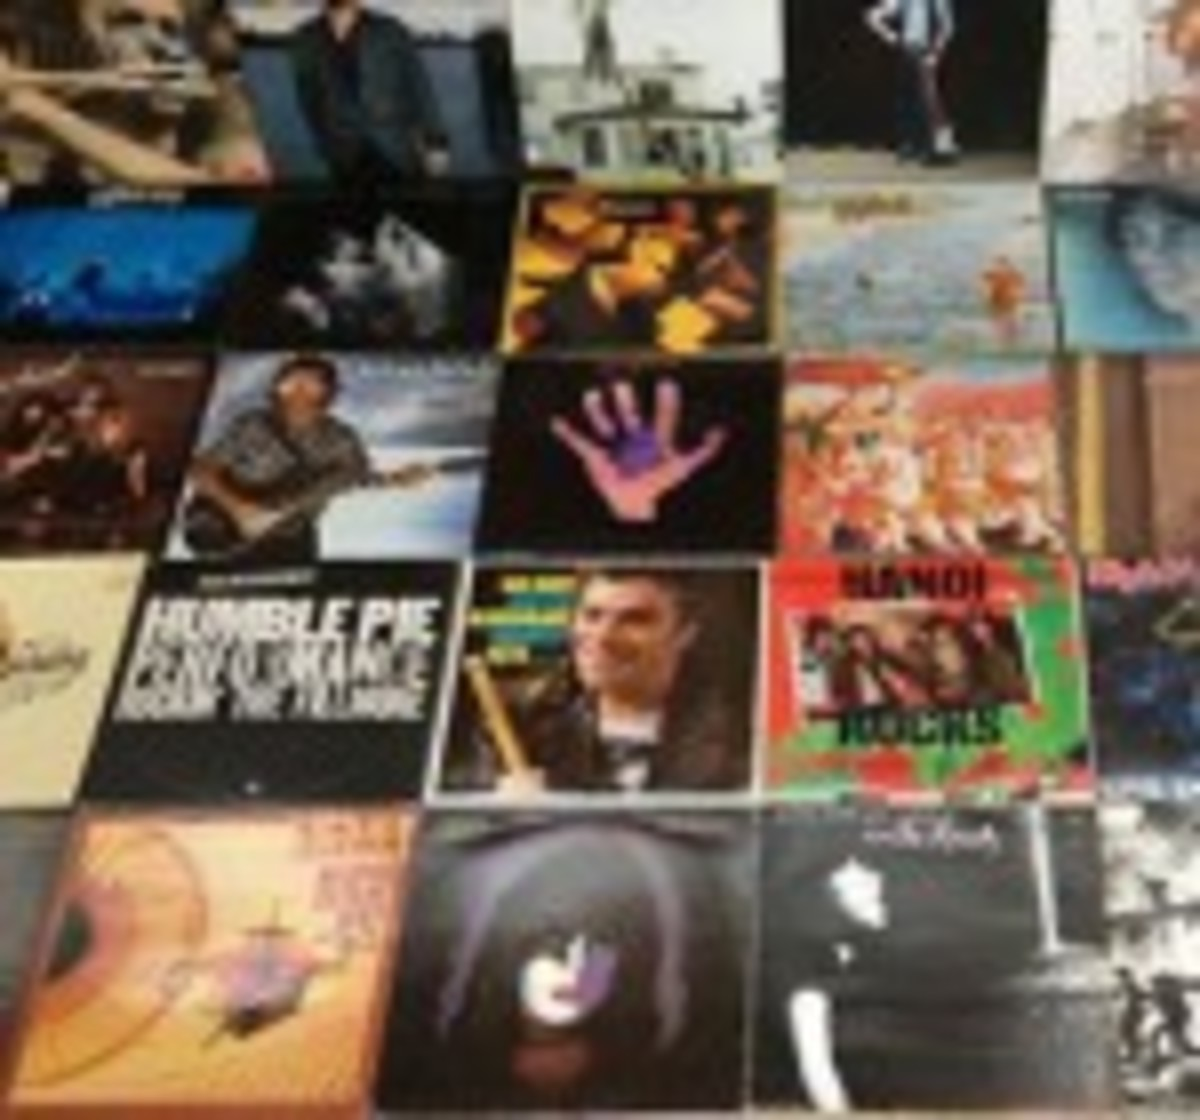 1,900 LPs and 100 12-inch singles